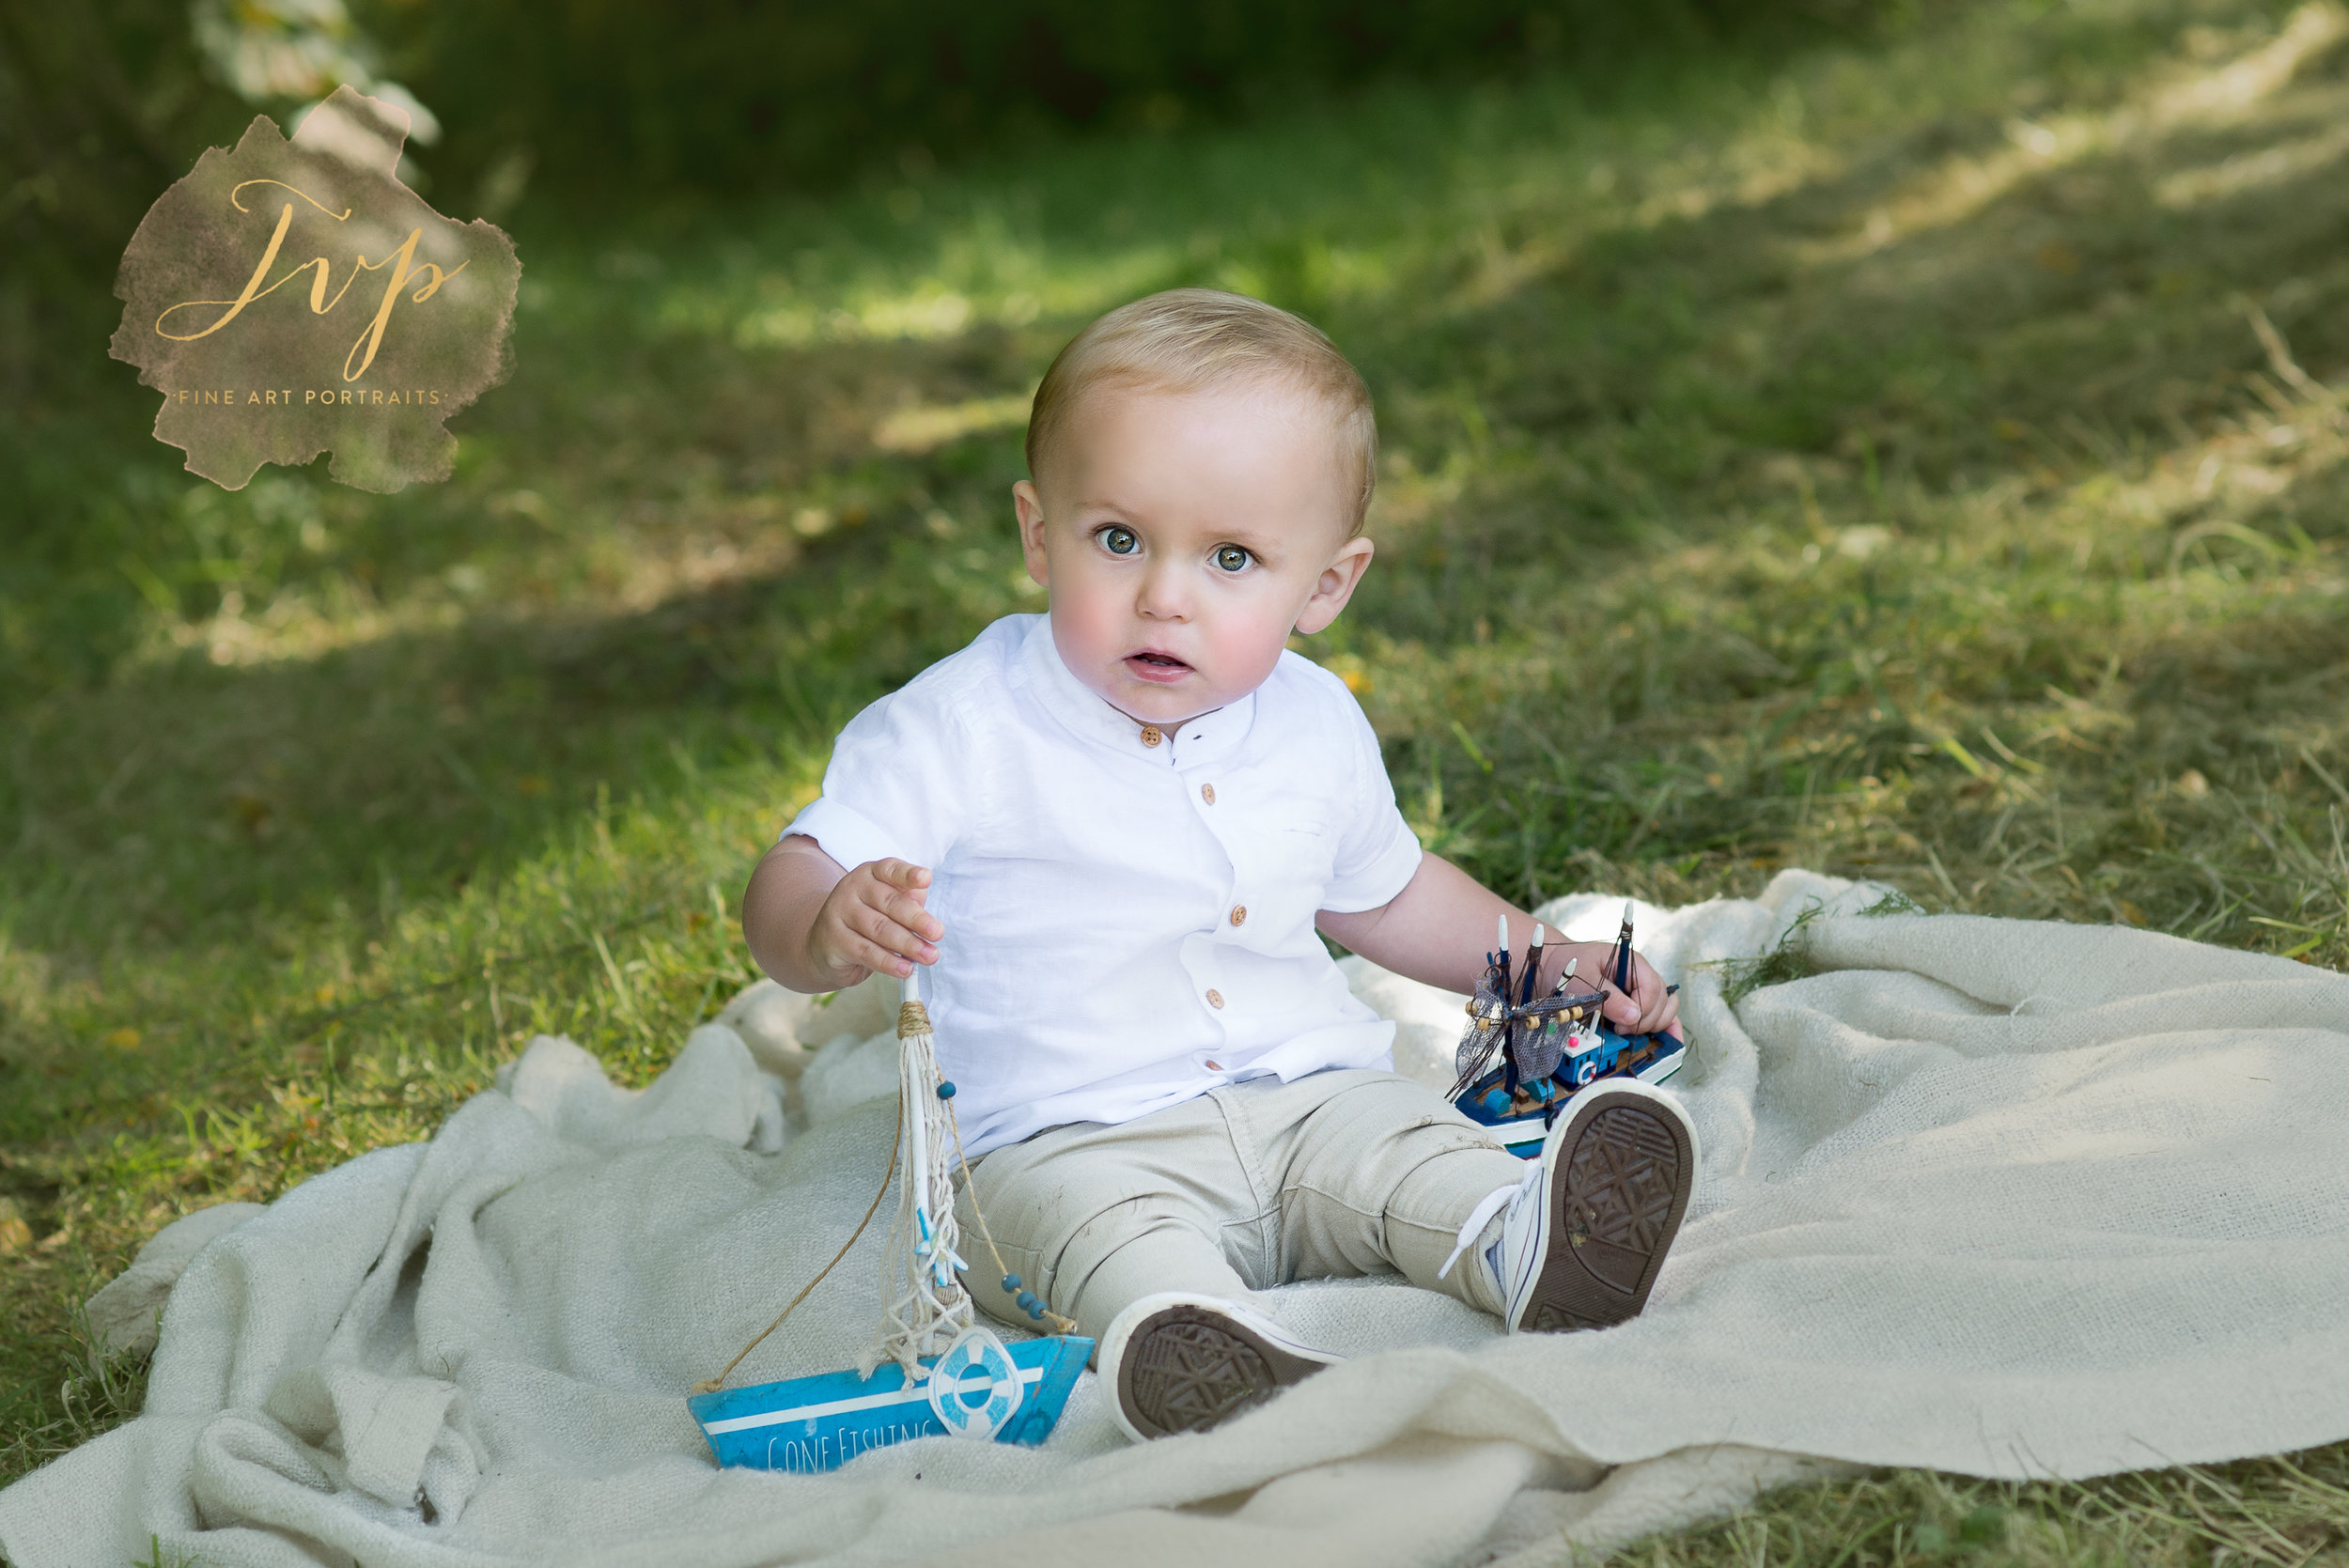 renfrewshire-photographer-baby-boy-with-boat